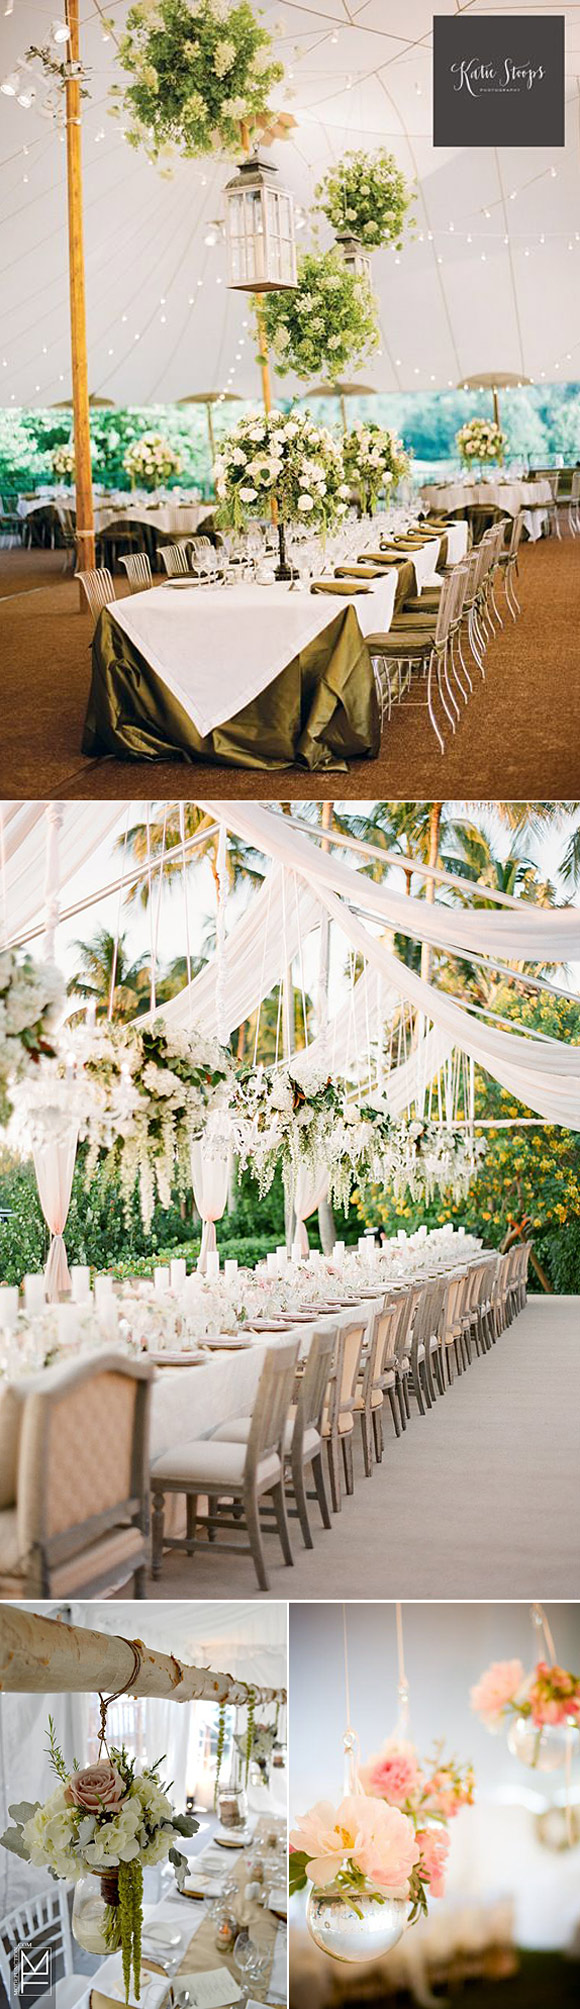 Ideas para decorar la carpa de tu boda con flores